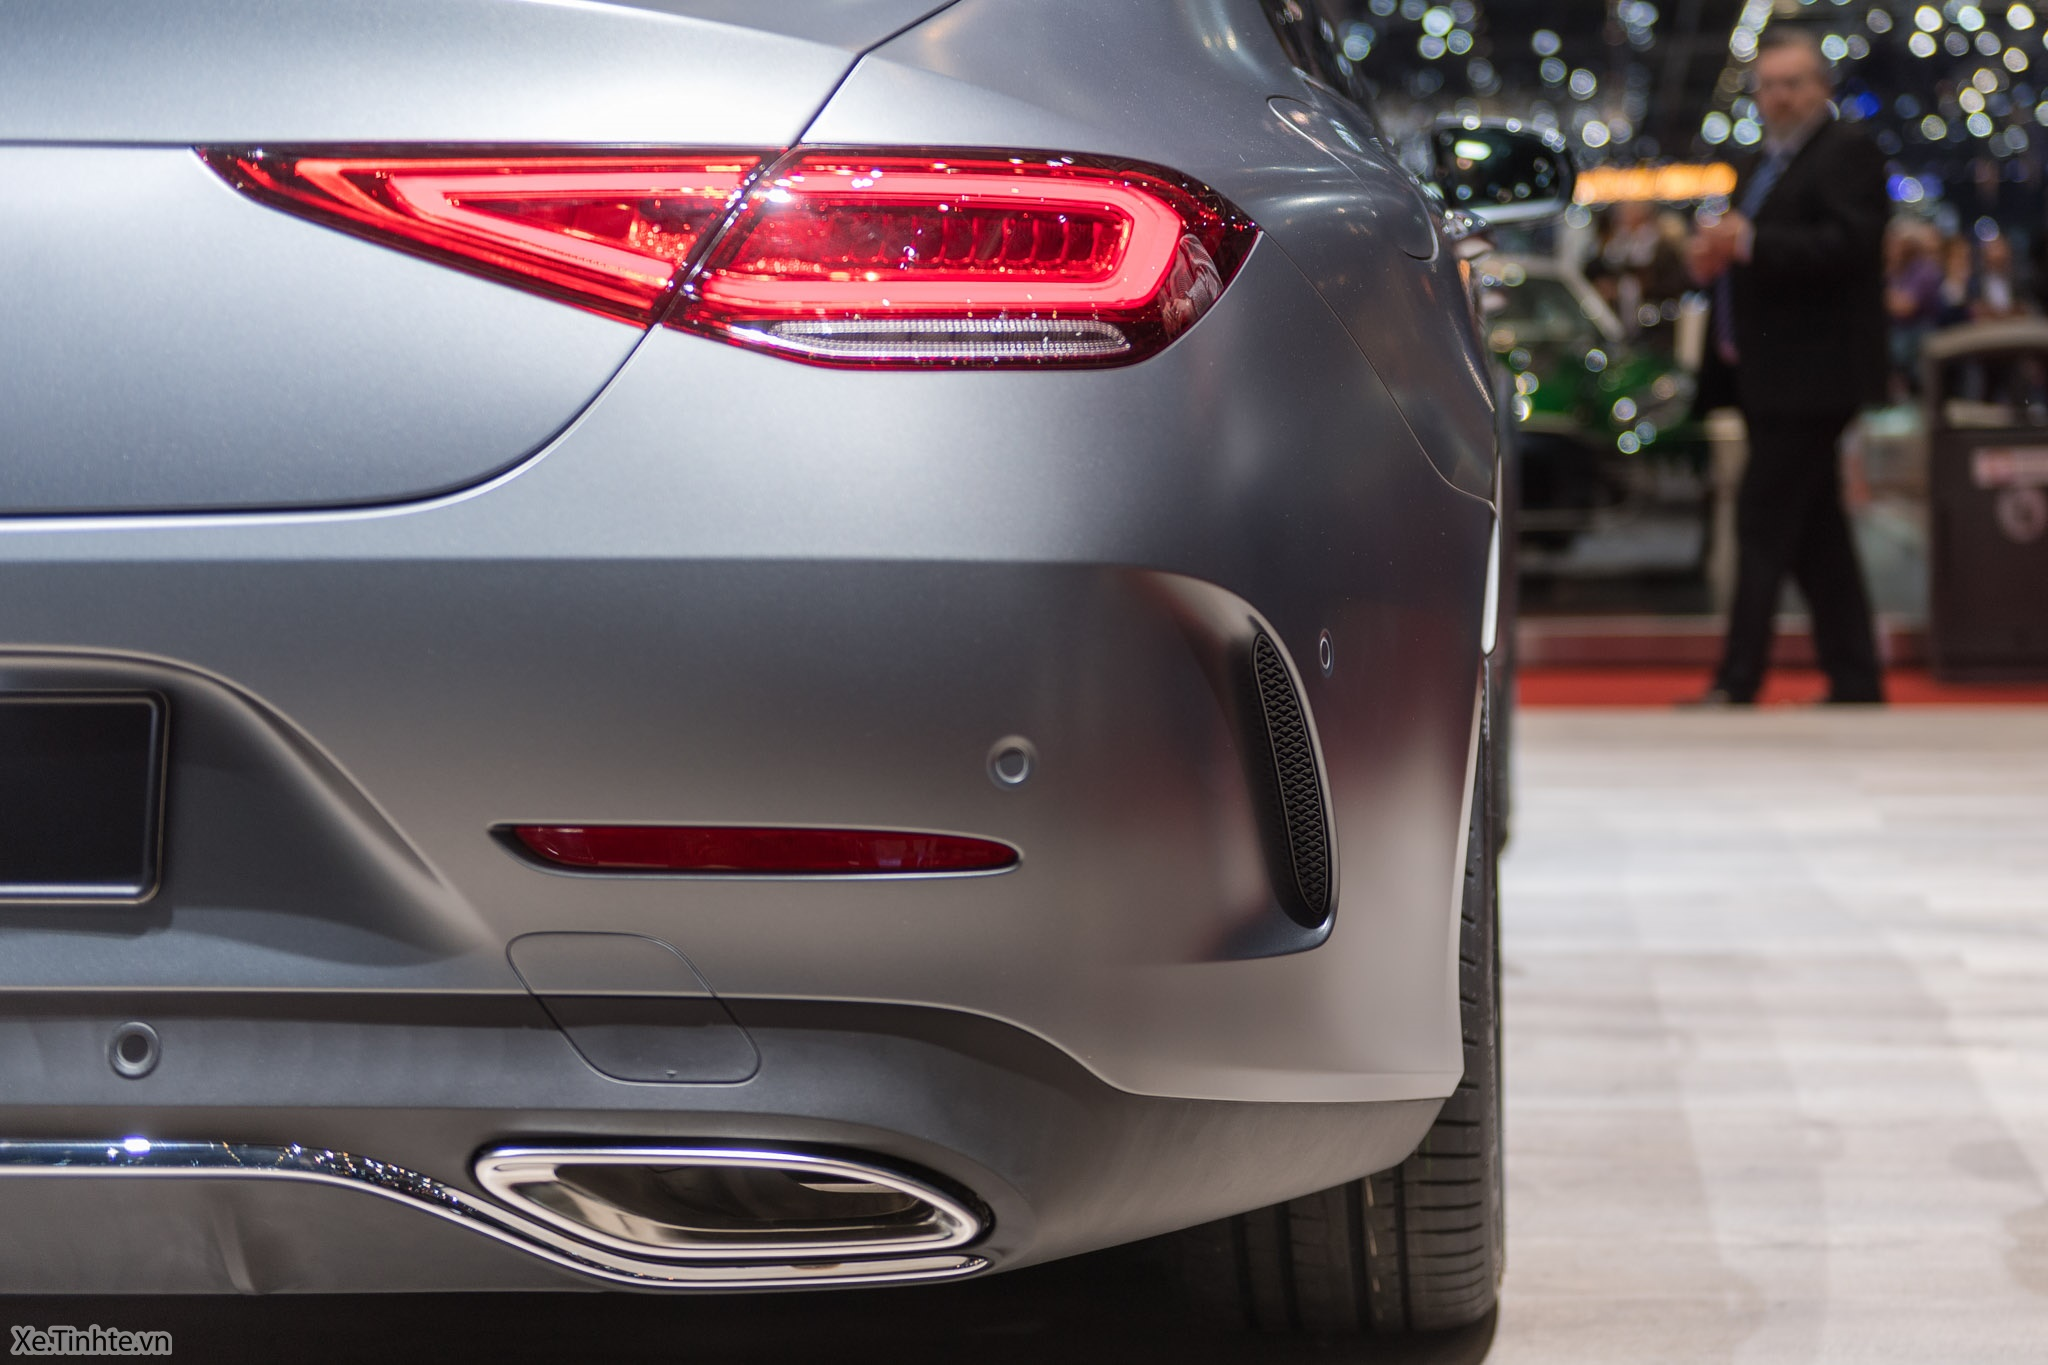 Mercedes_CLS_450_4MATIC_Coupe_Xe_Tinhte-009.jpg